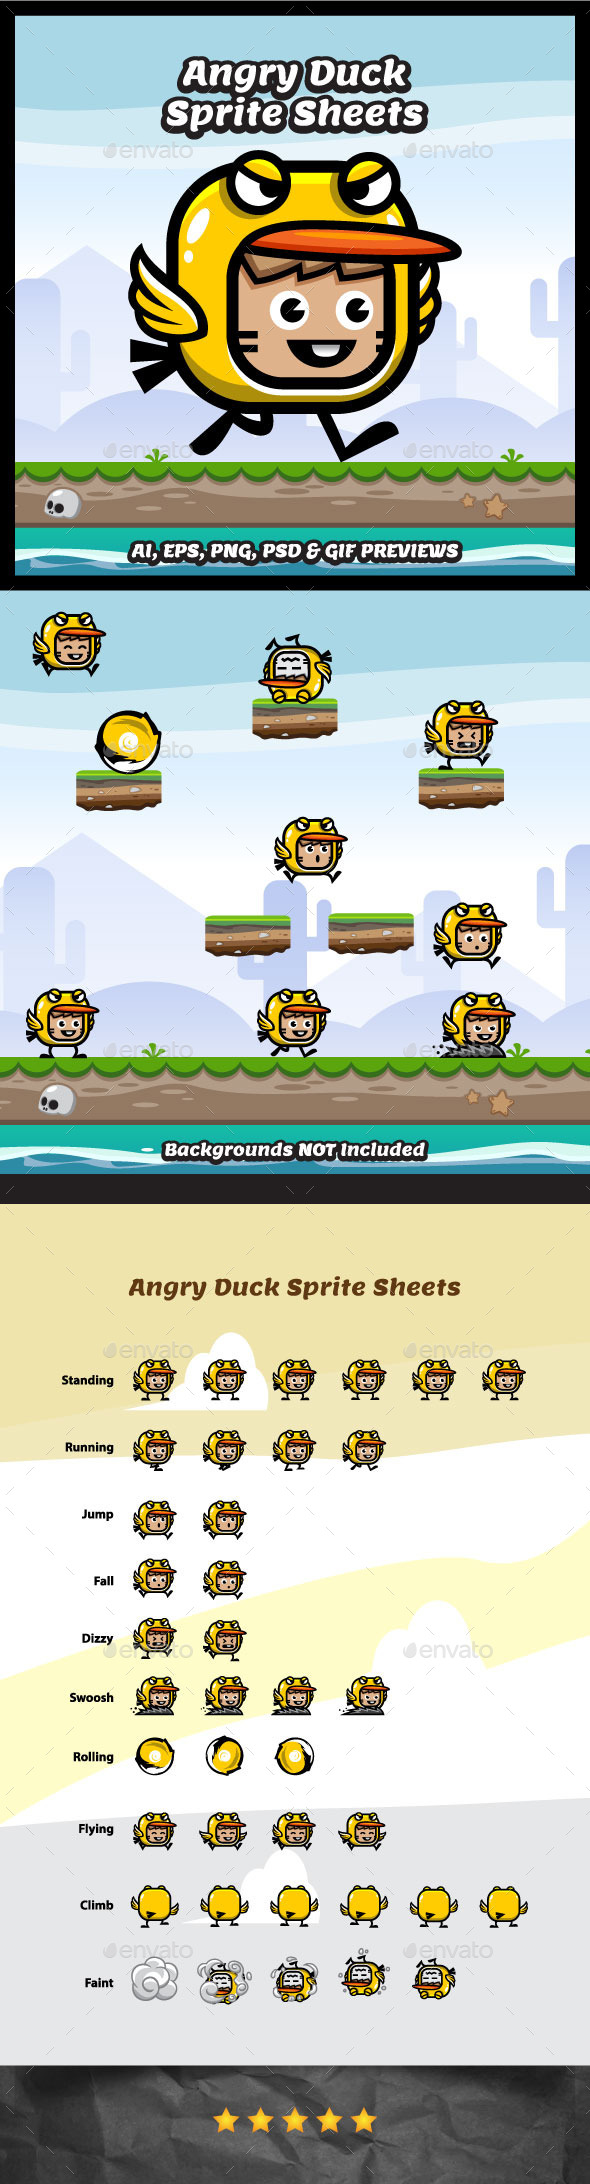 Angry Duck Mascot Game Character Sprites - Sprites Game Assets